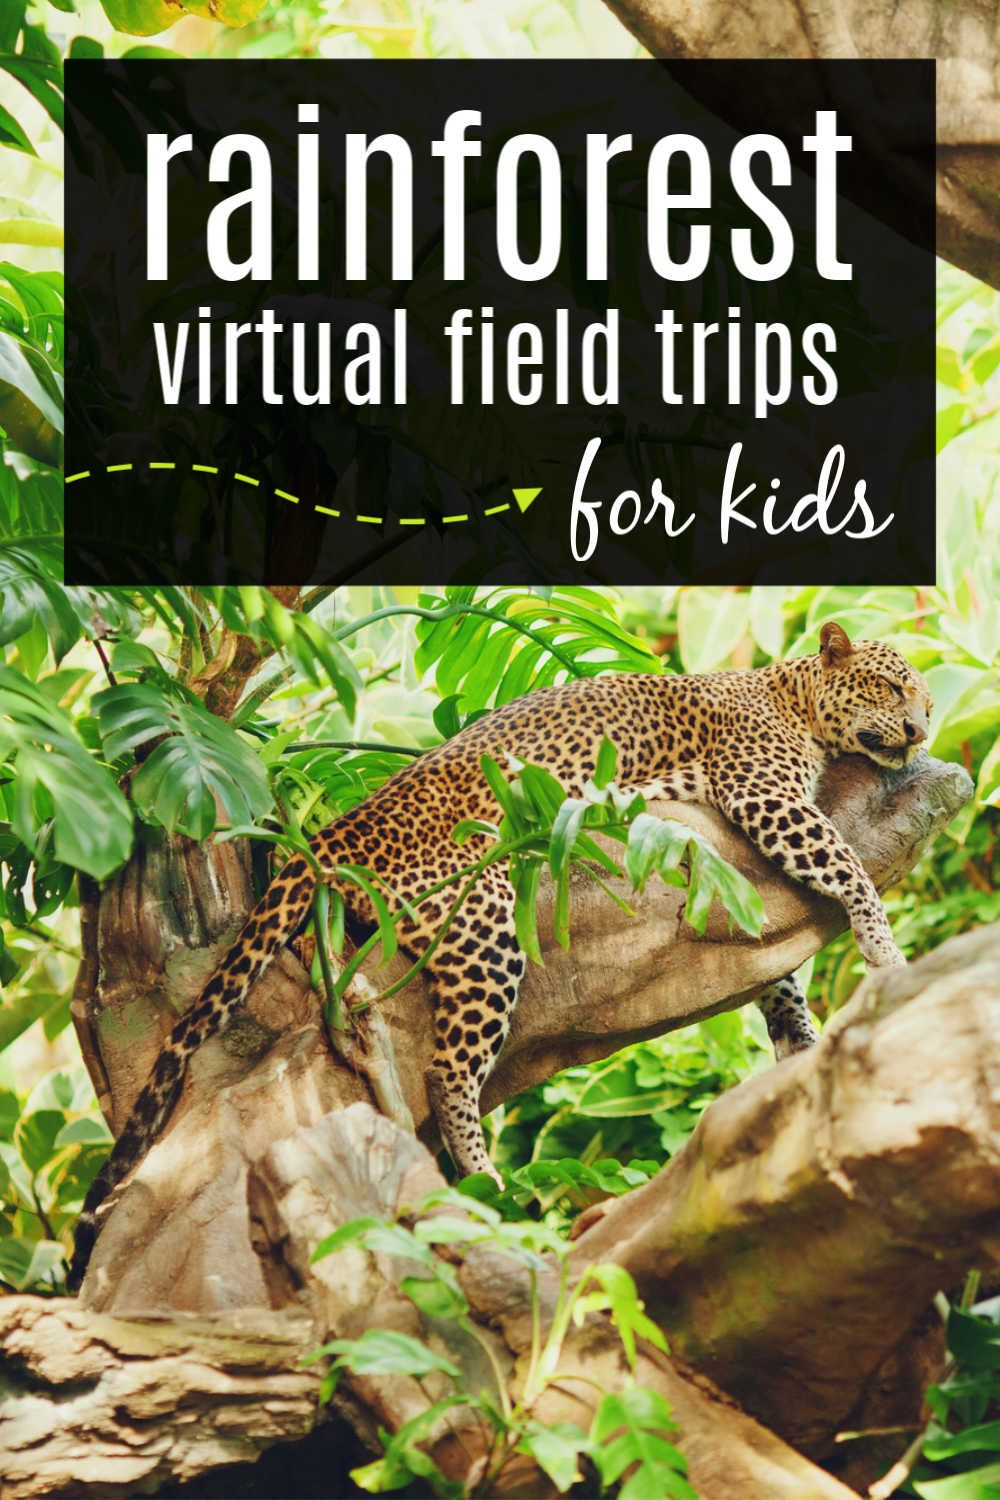 A Virtual Field Trip to the Rainforest with Videos and Songs for Kids